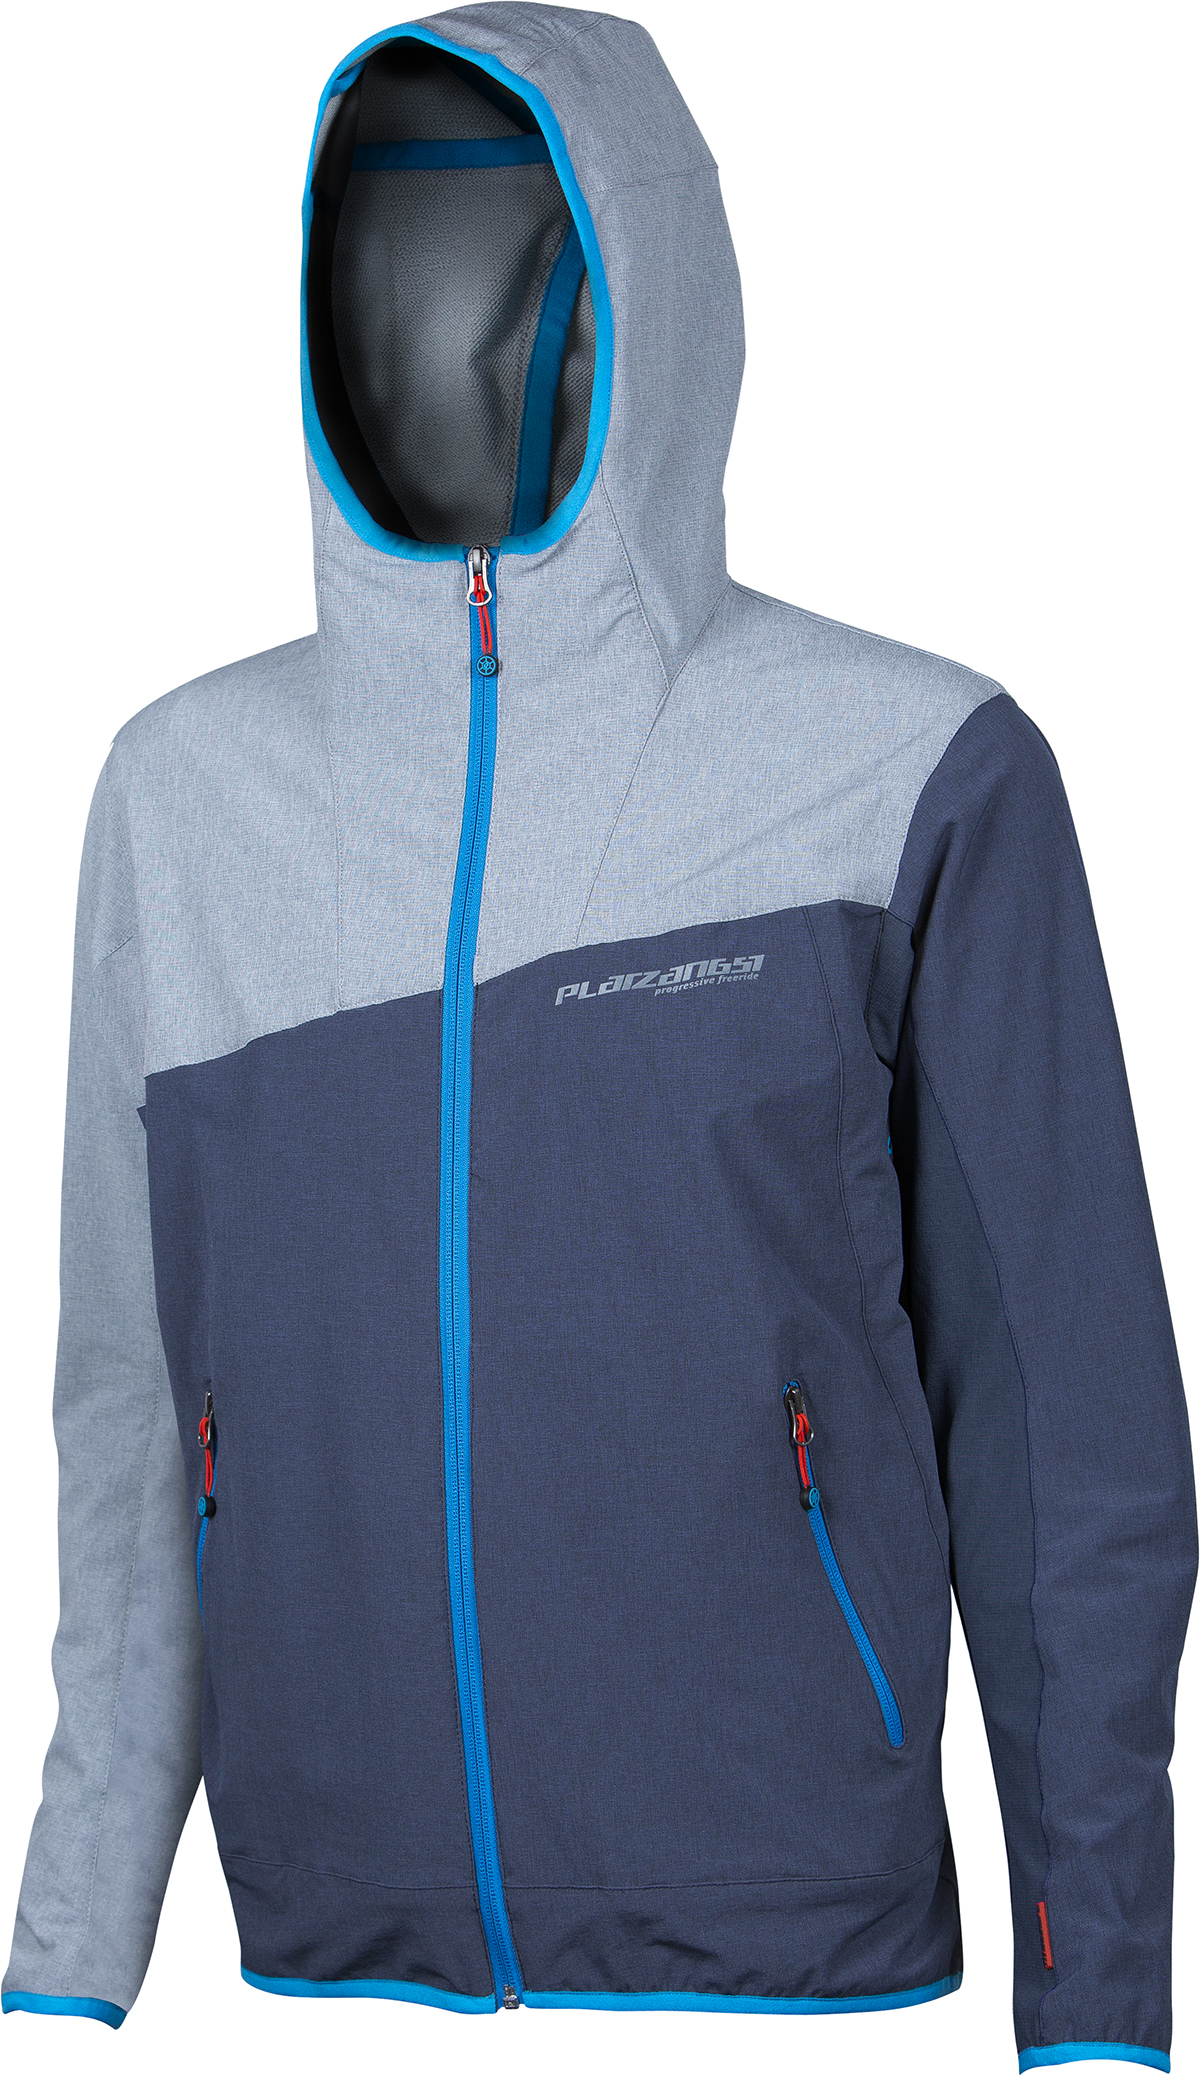 Crossflex jacket blue